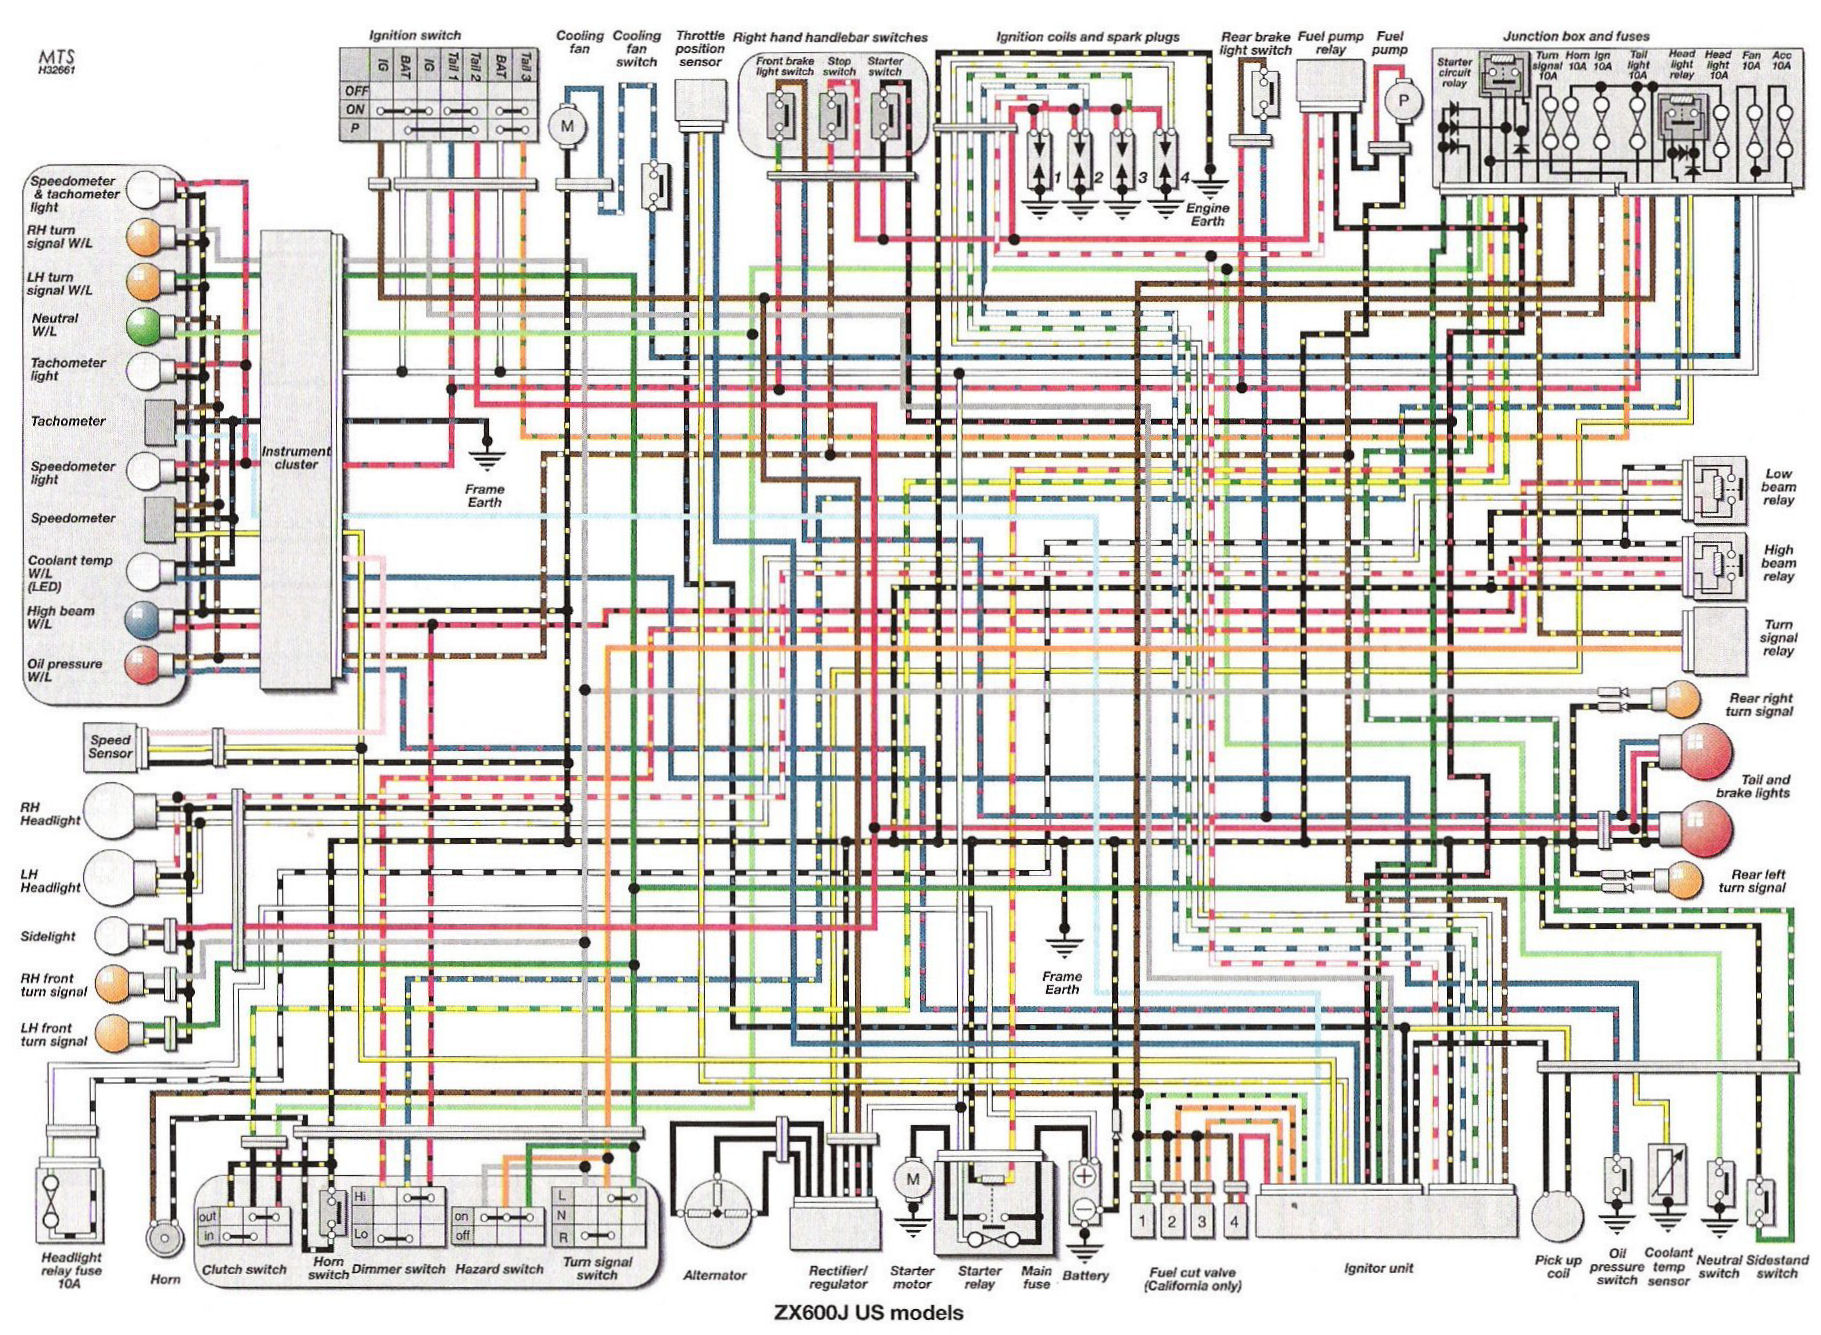 2009 yamaha r6 wiring diagram a wiring diagram 2003 yamaha r1 wiring diagram diagrams and schematics